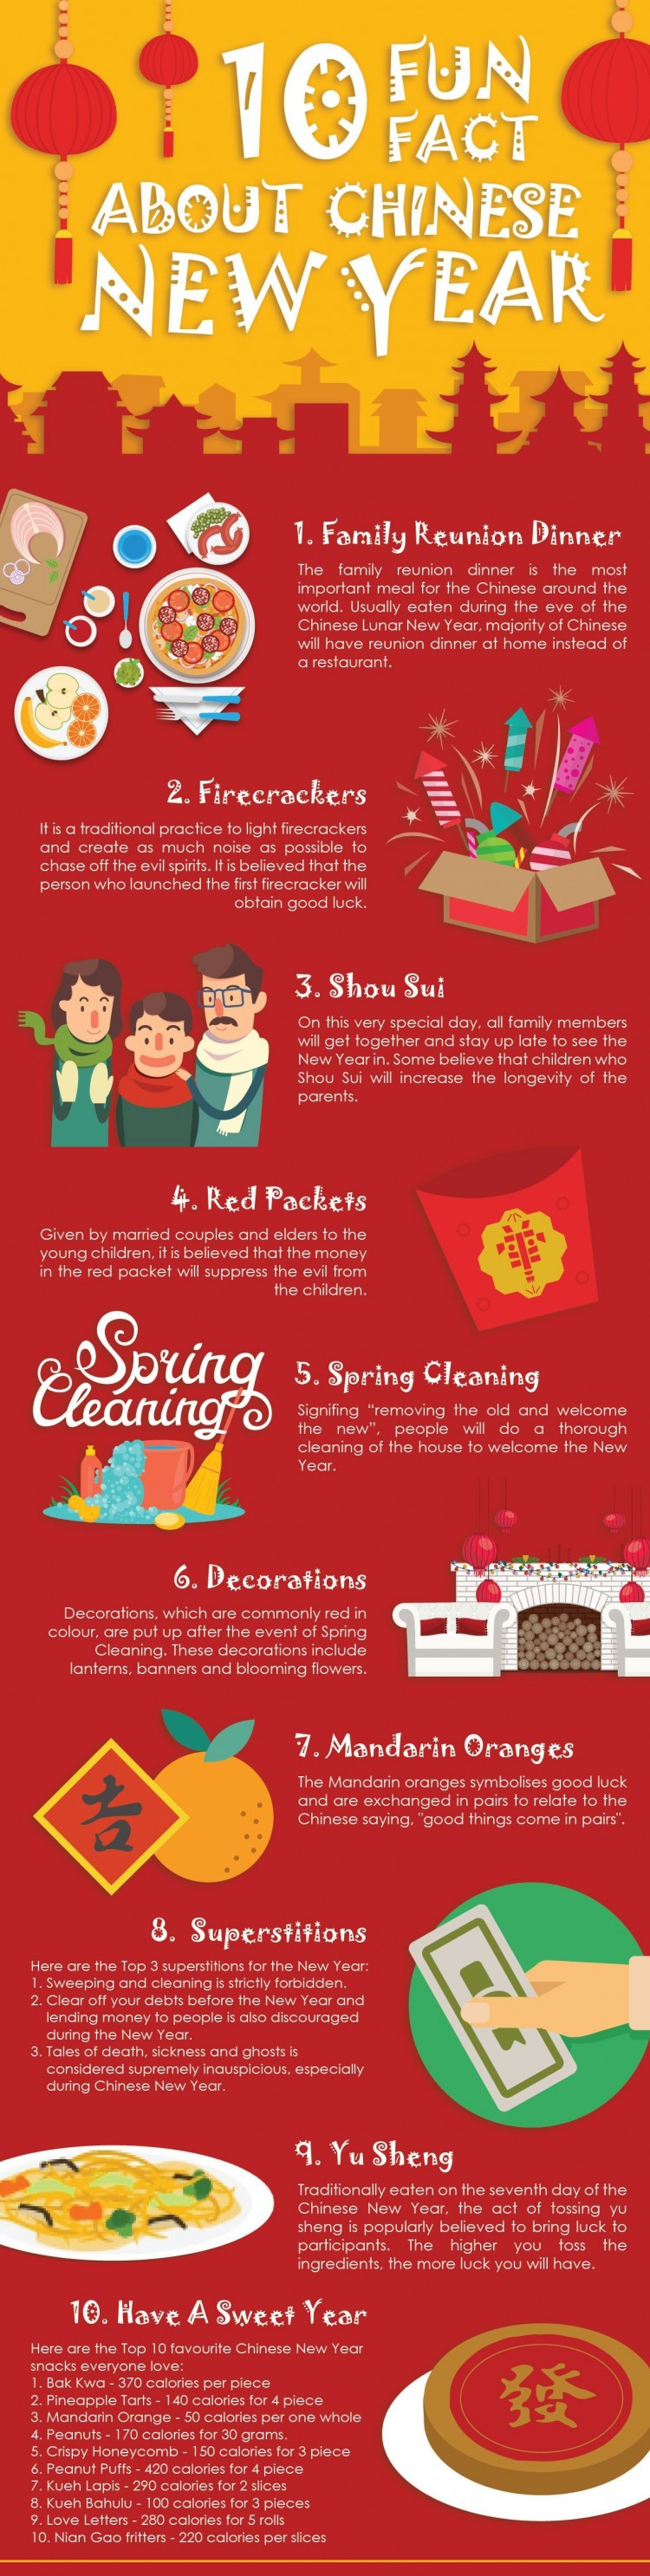 10-fun-facts-about-chinese-new-year-2021